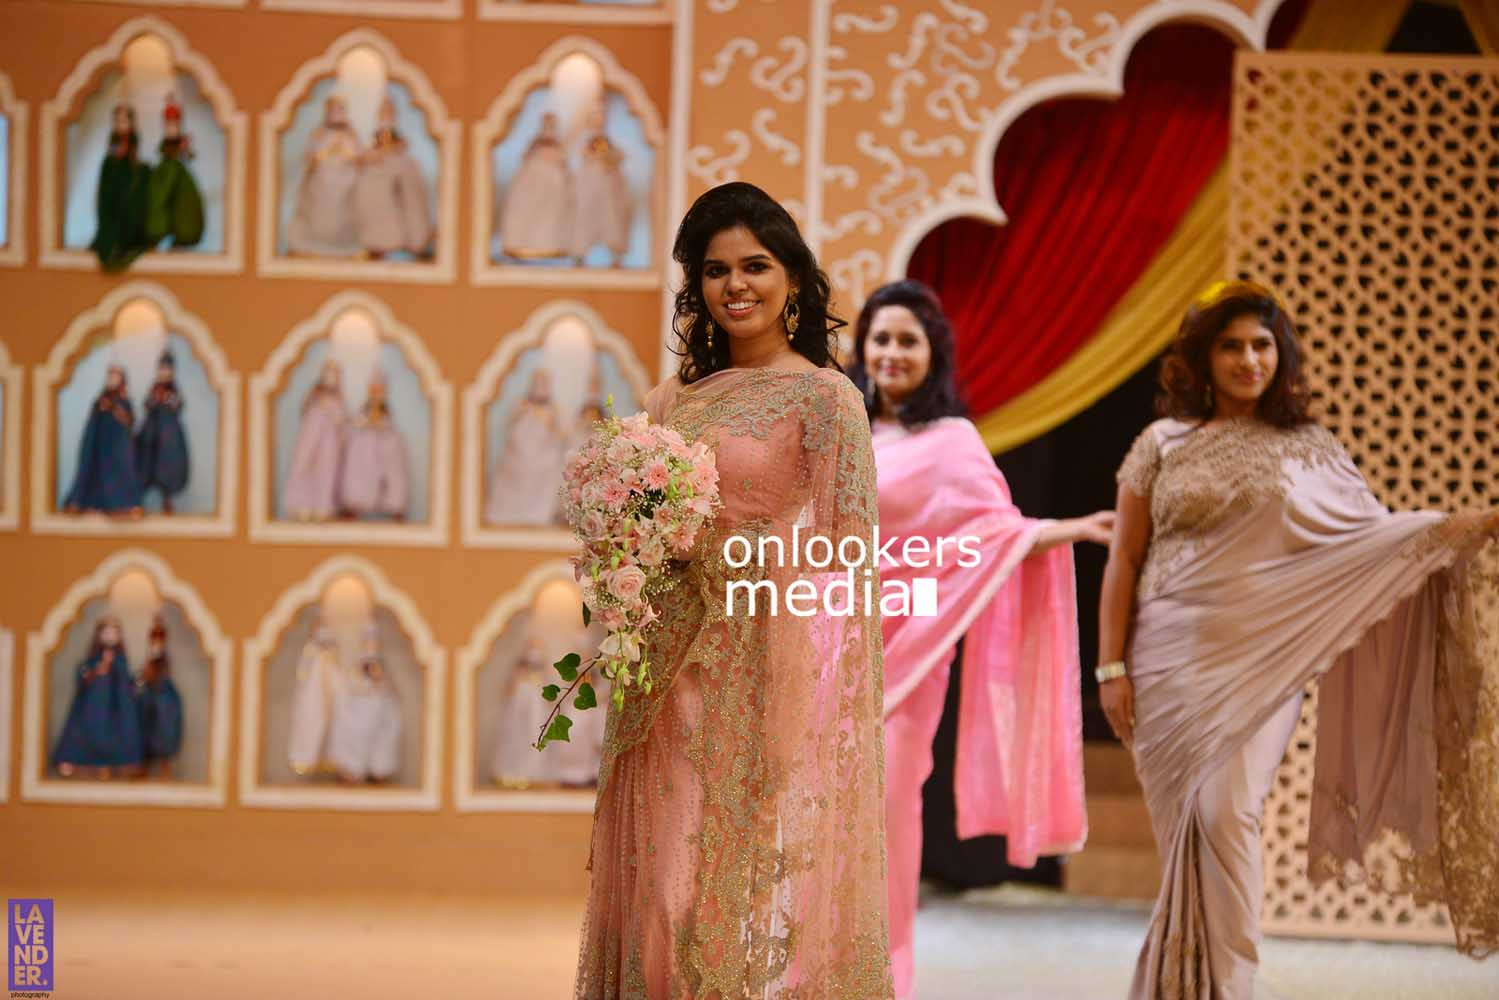 http://onlookersmedia.in/wp-content/uploads/2016/10/Beena-Kannan-Bridal-Show-2016-Stills-Photos-Seematti-42.jpg